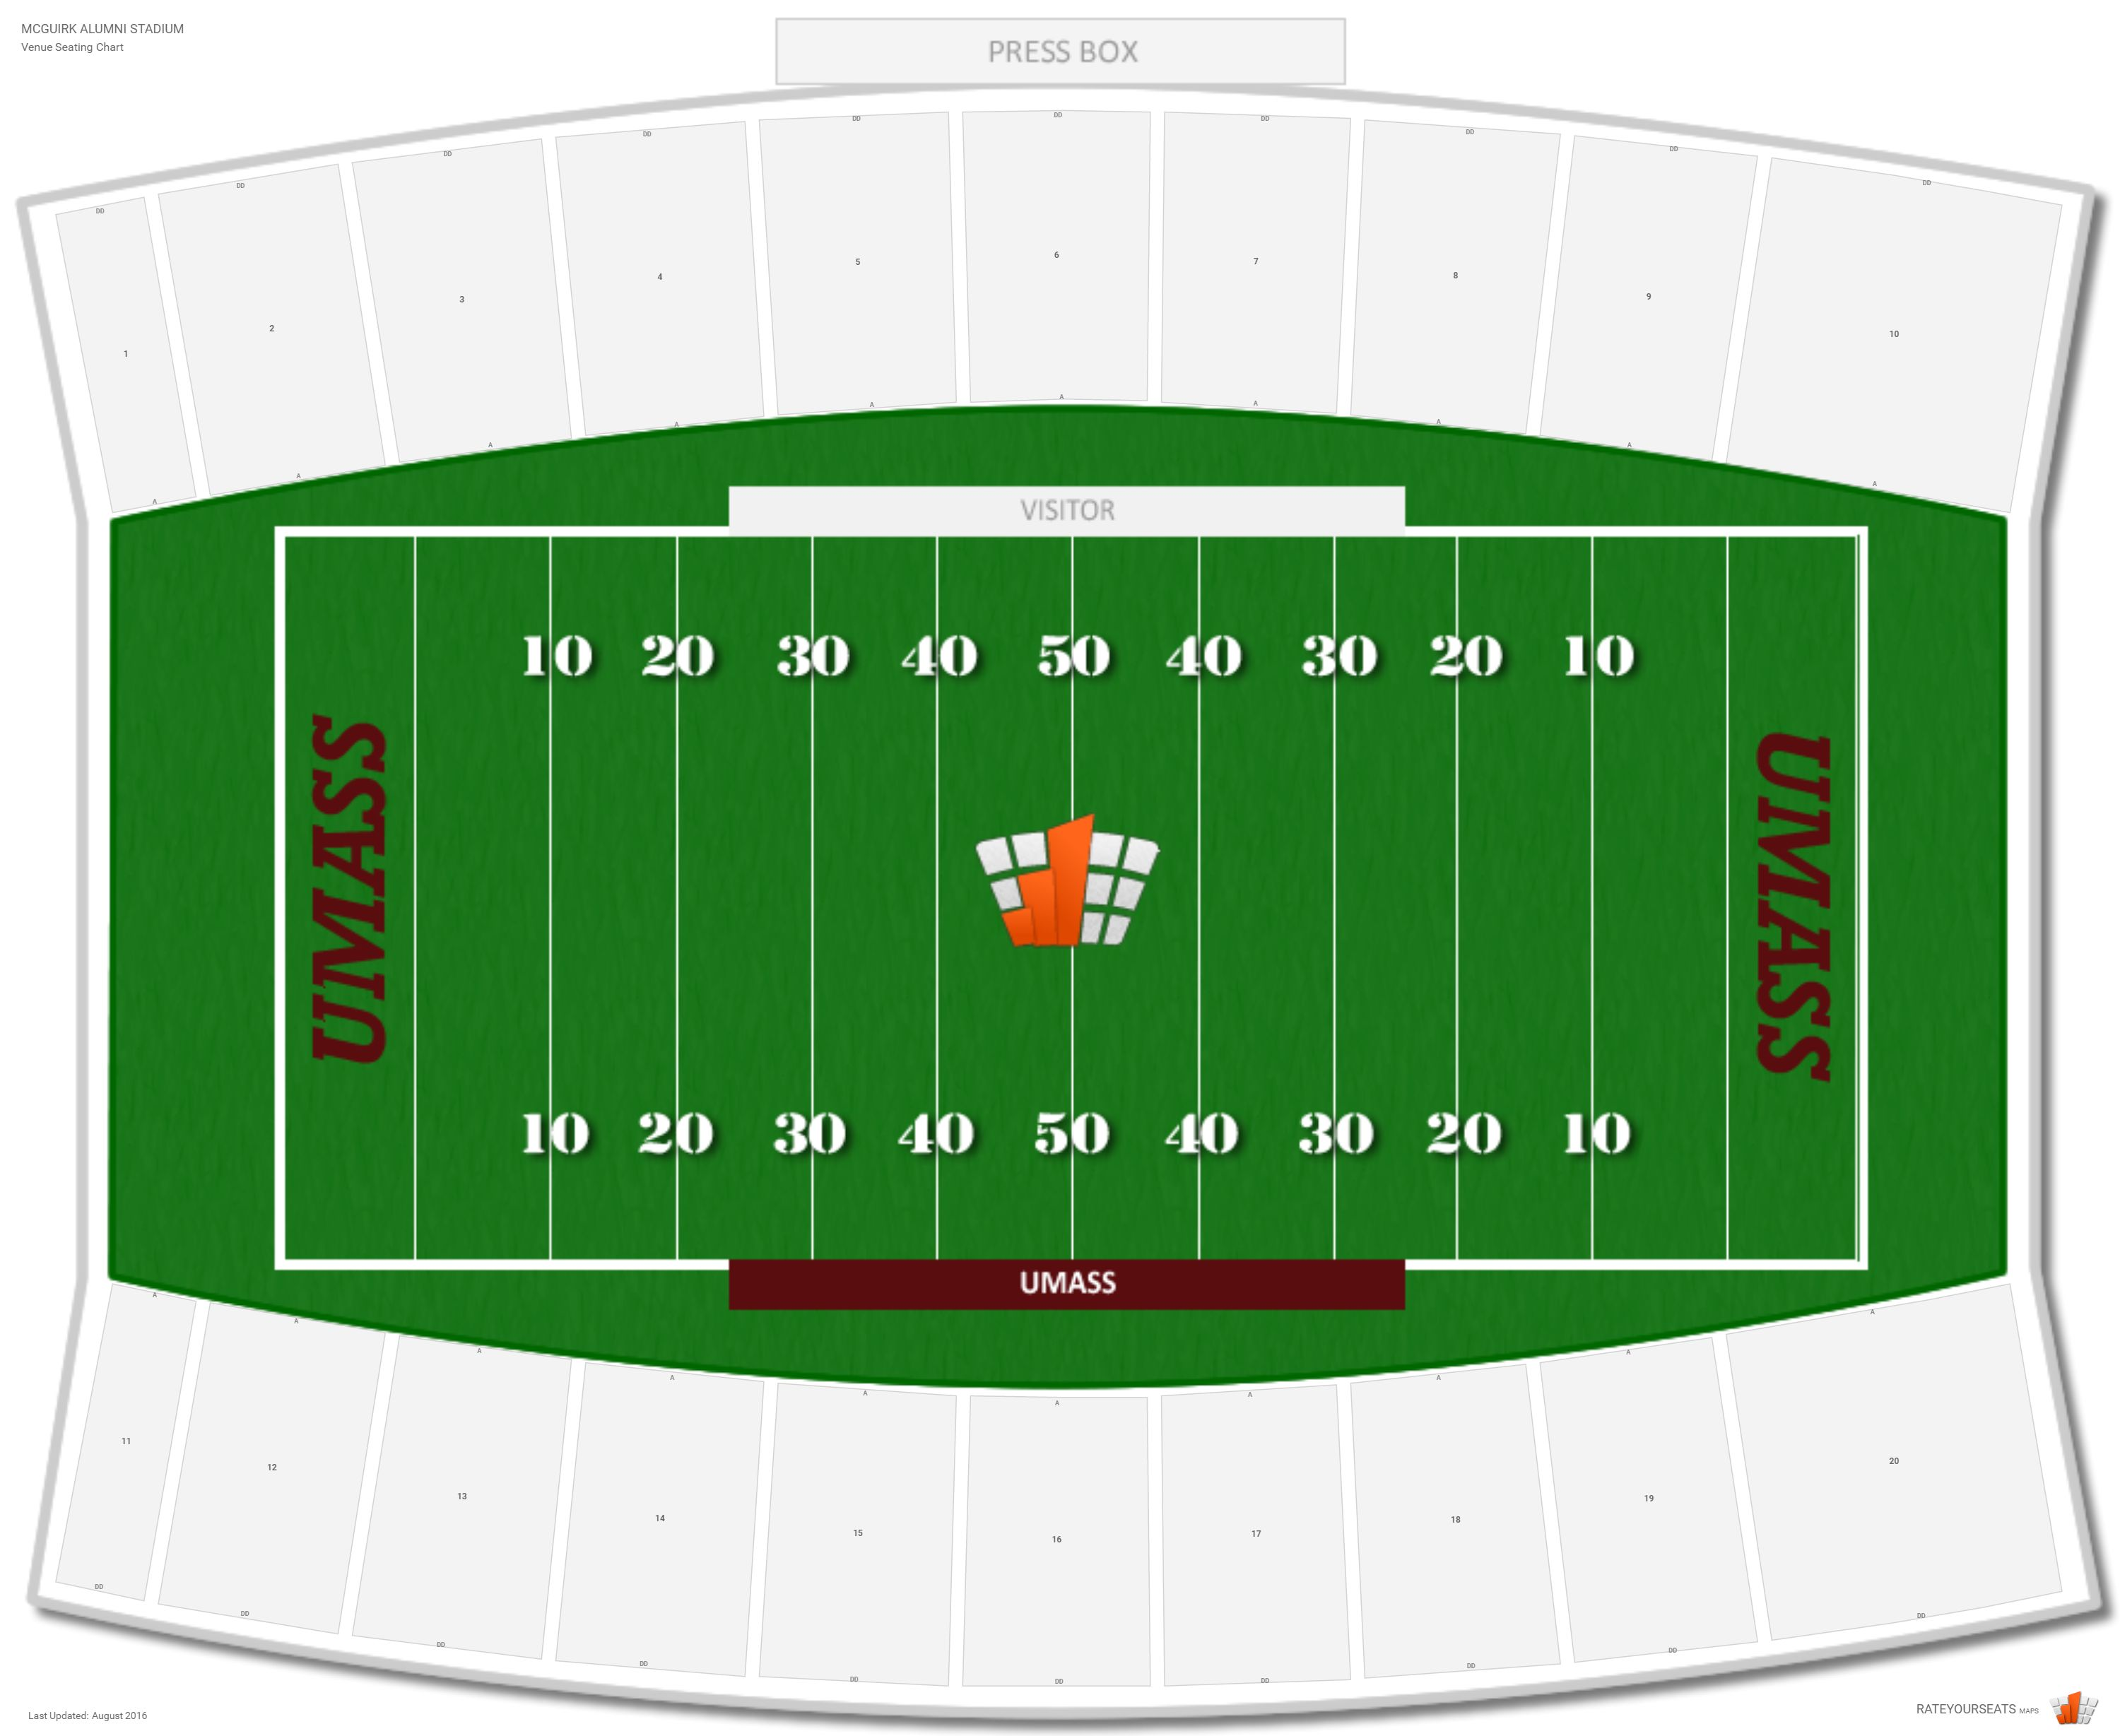 Mcguirk alumni stadium umass seating guide rateyourseats com